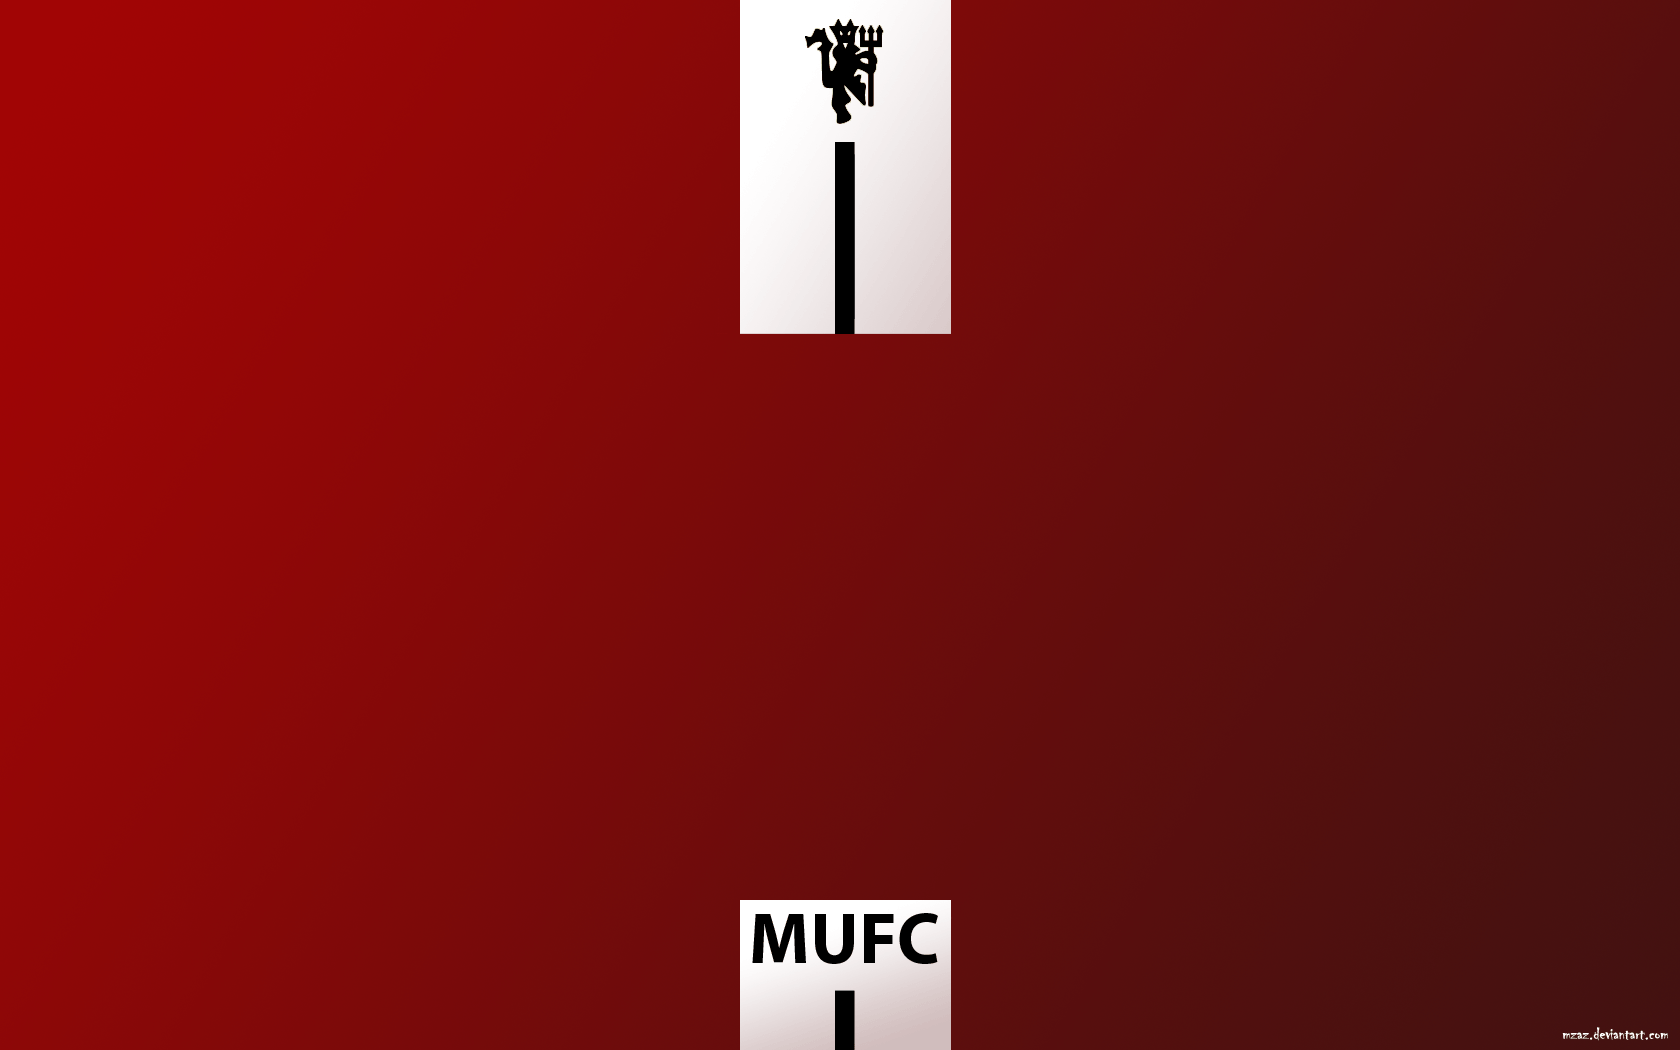 manchester united wallpaper | manchester united wallpaper - Part 2